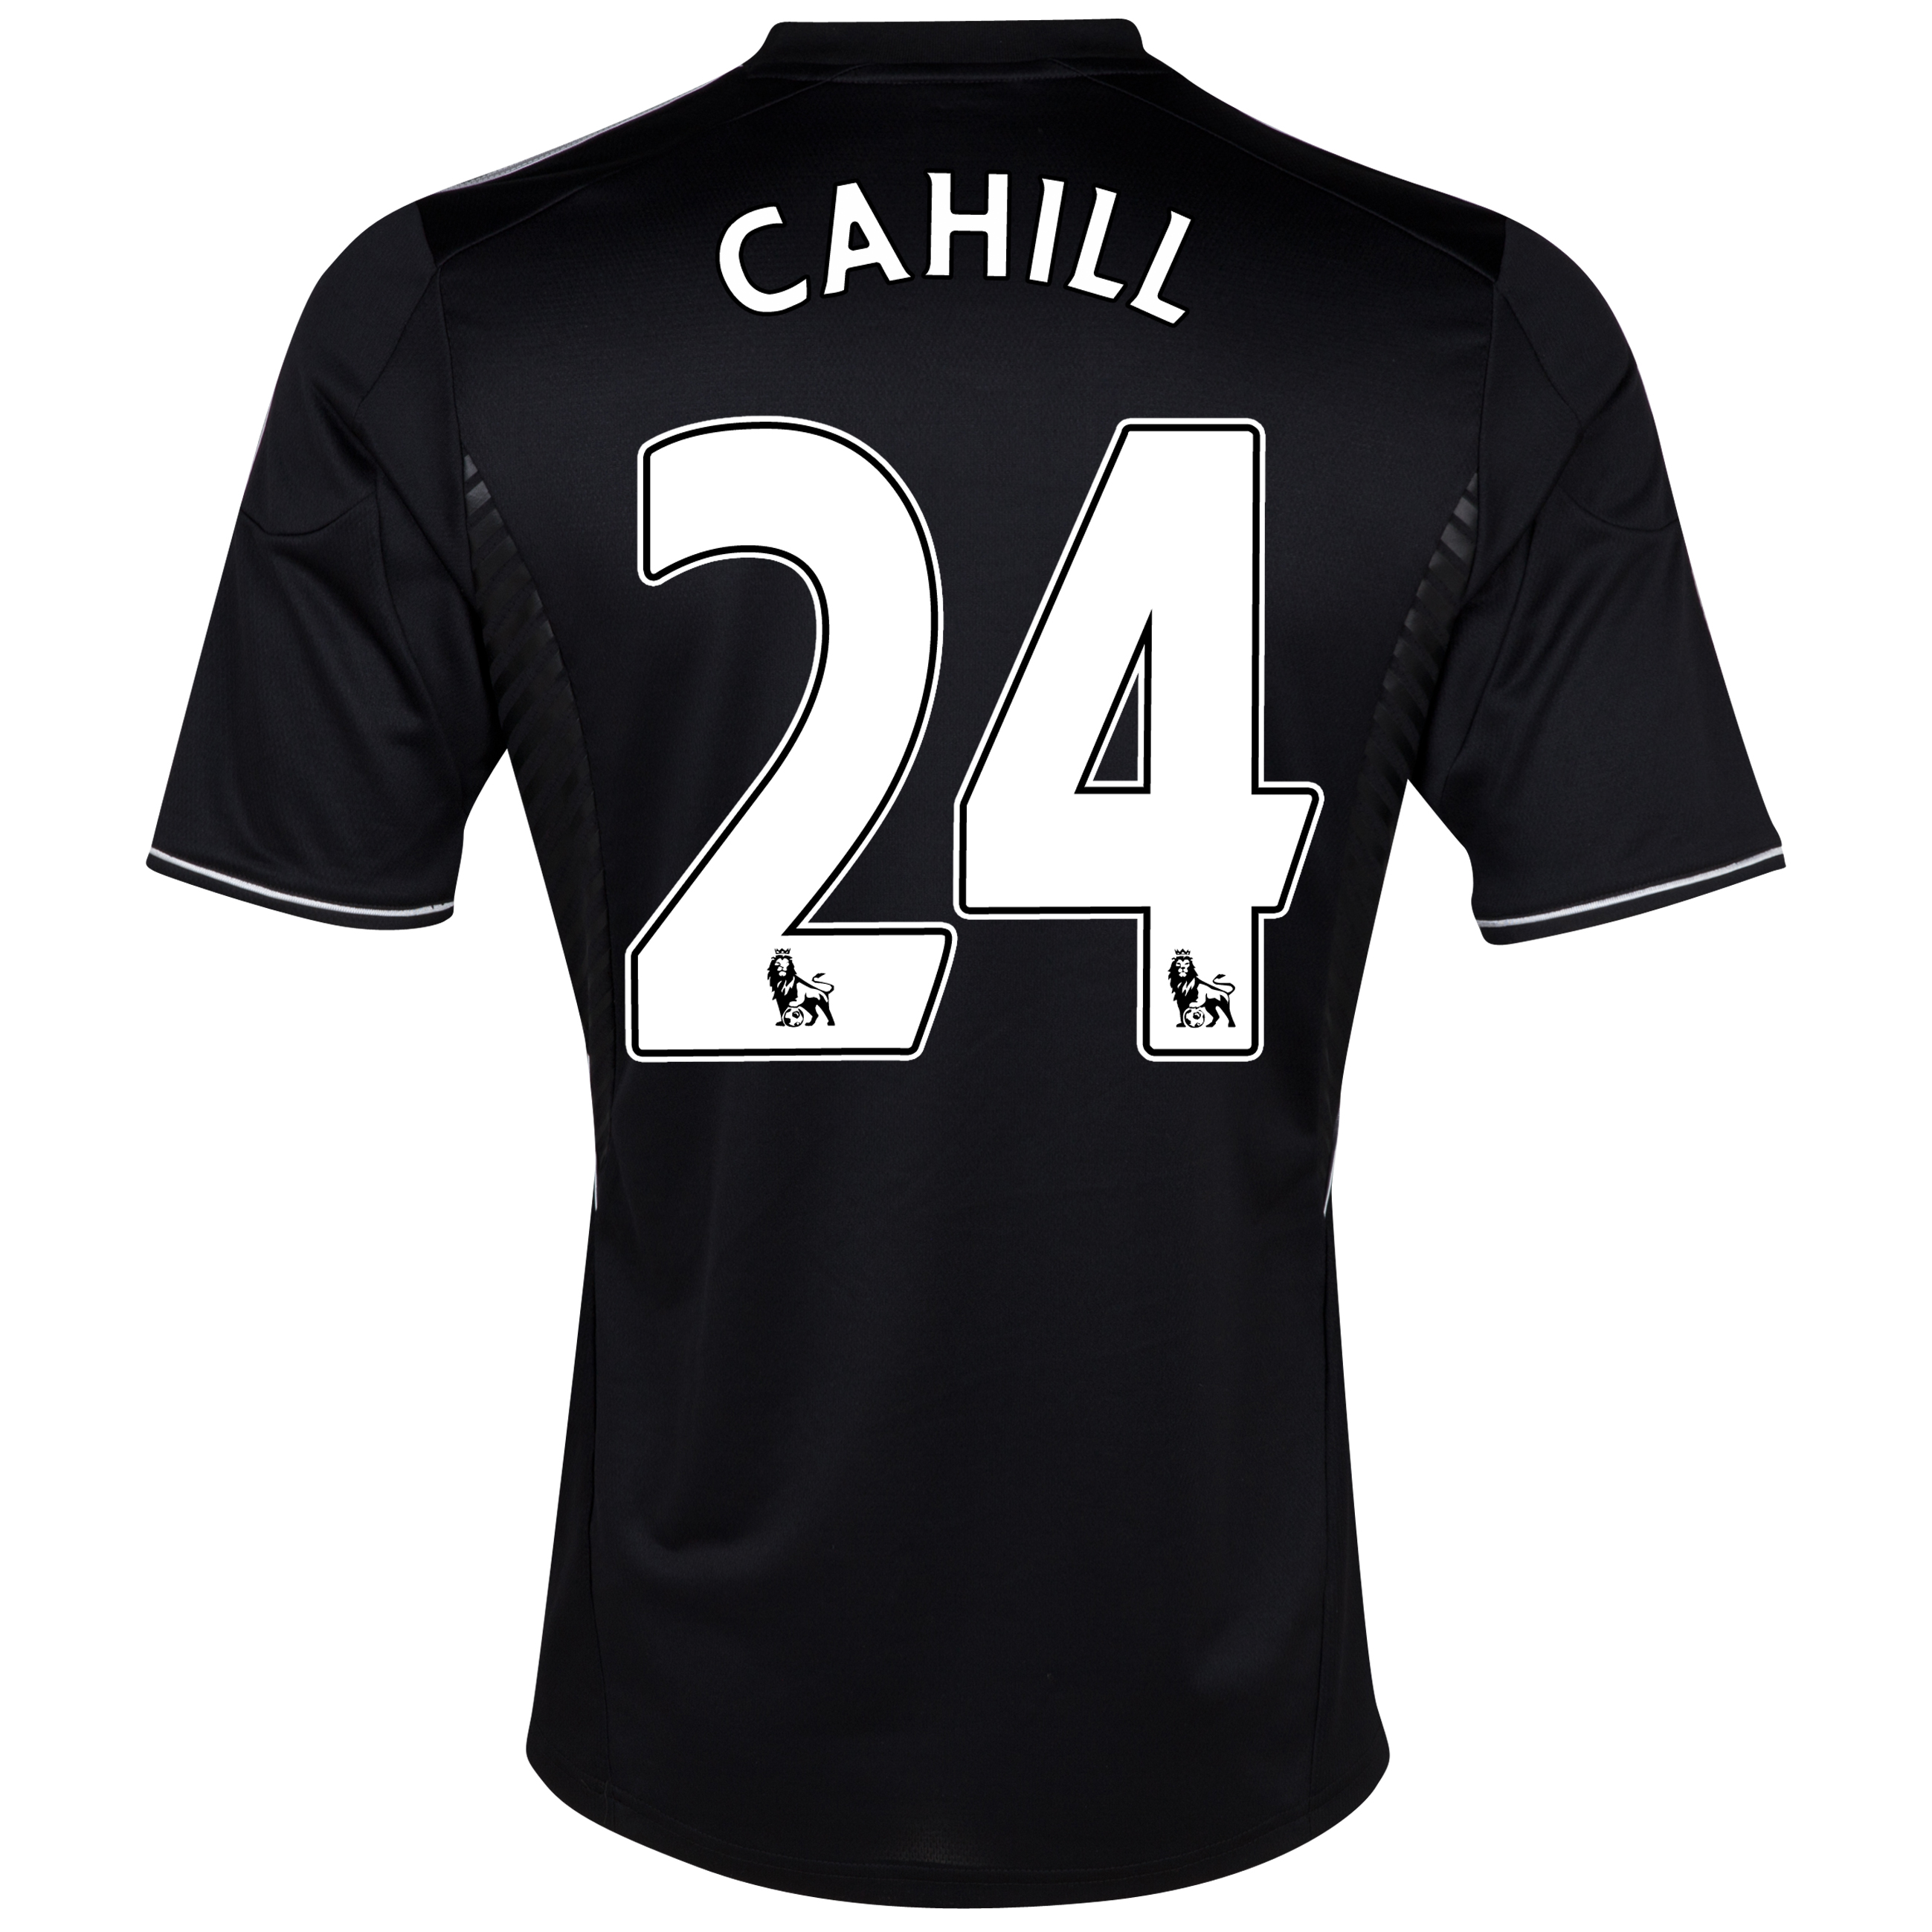 Chelsea Third Shirt 2013/14 - Kids with Cahill 24 printing